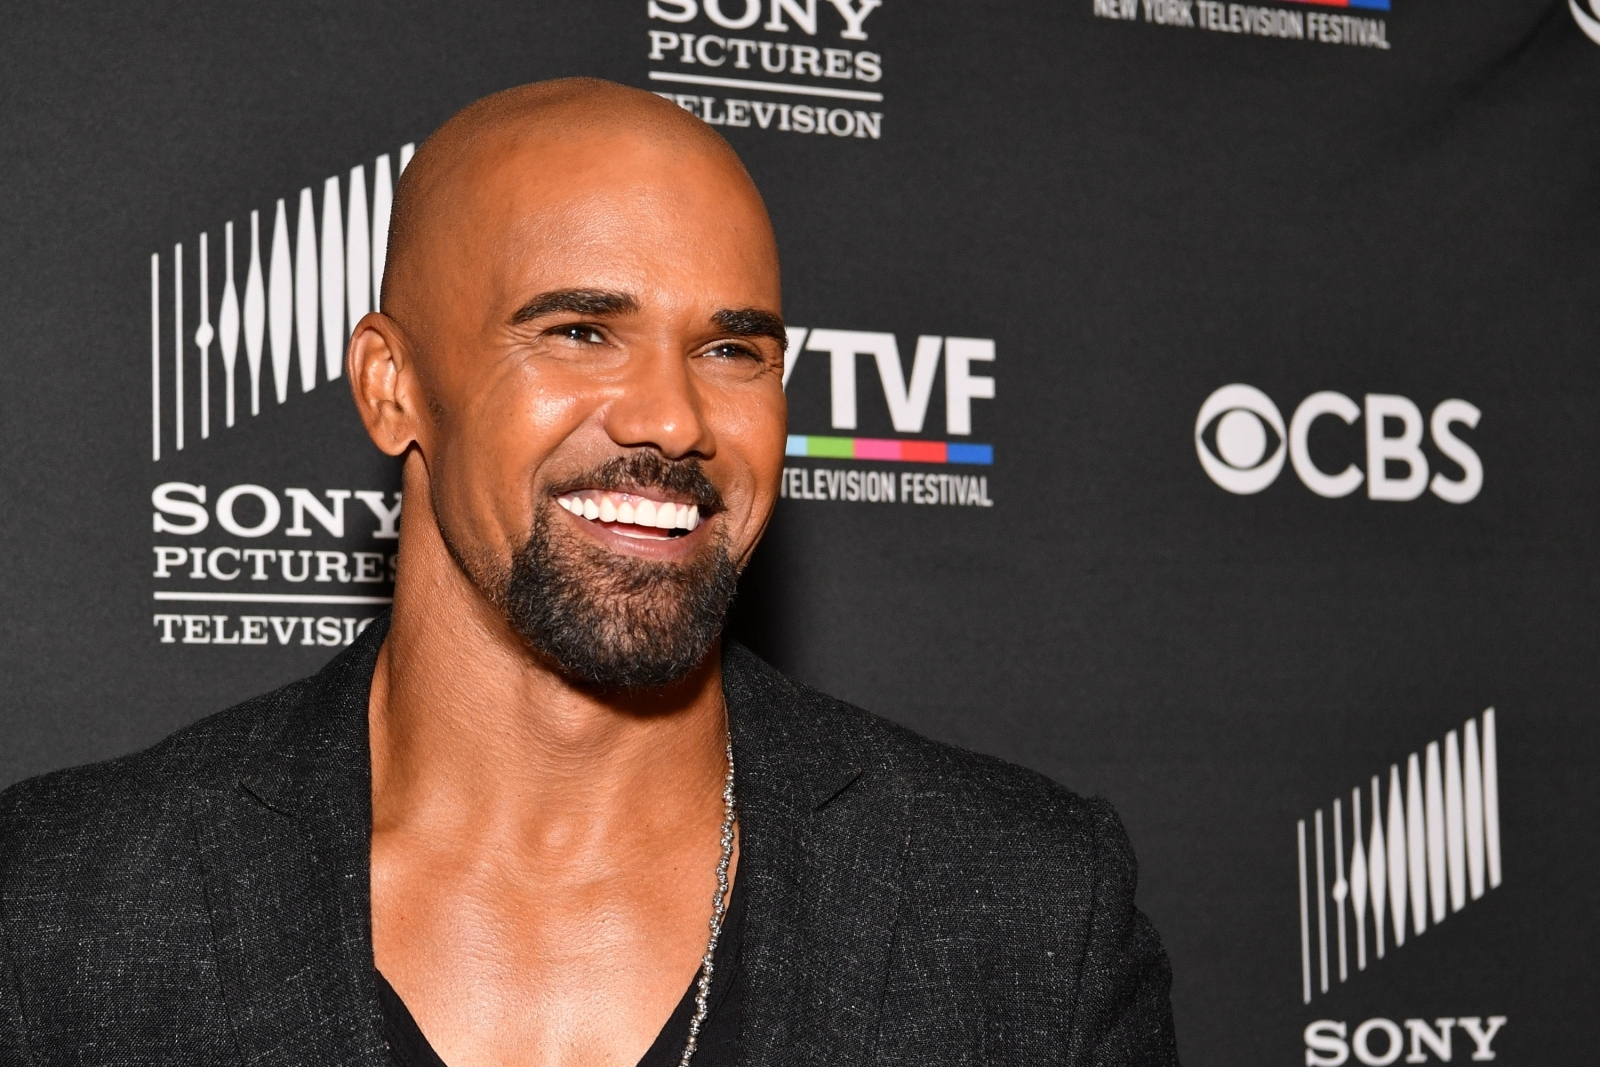 Is shemar moore bisexual